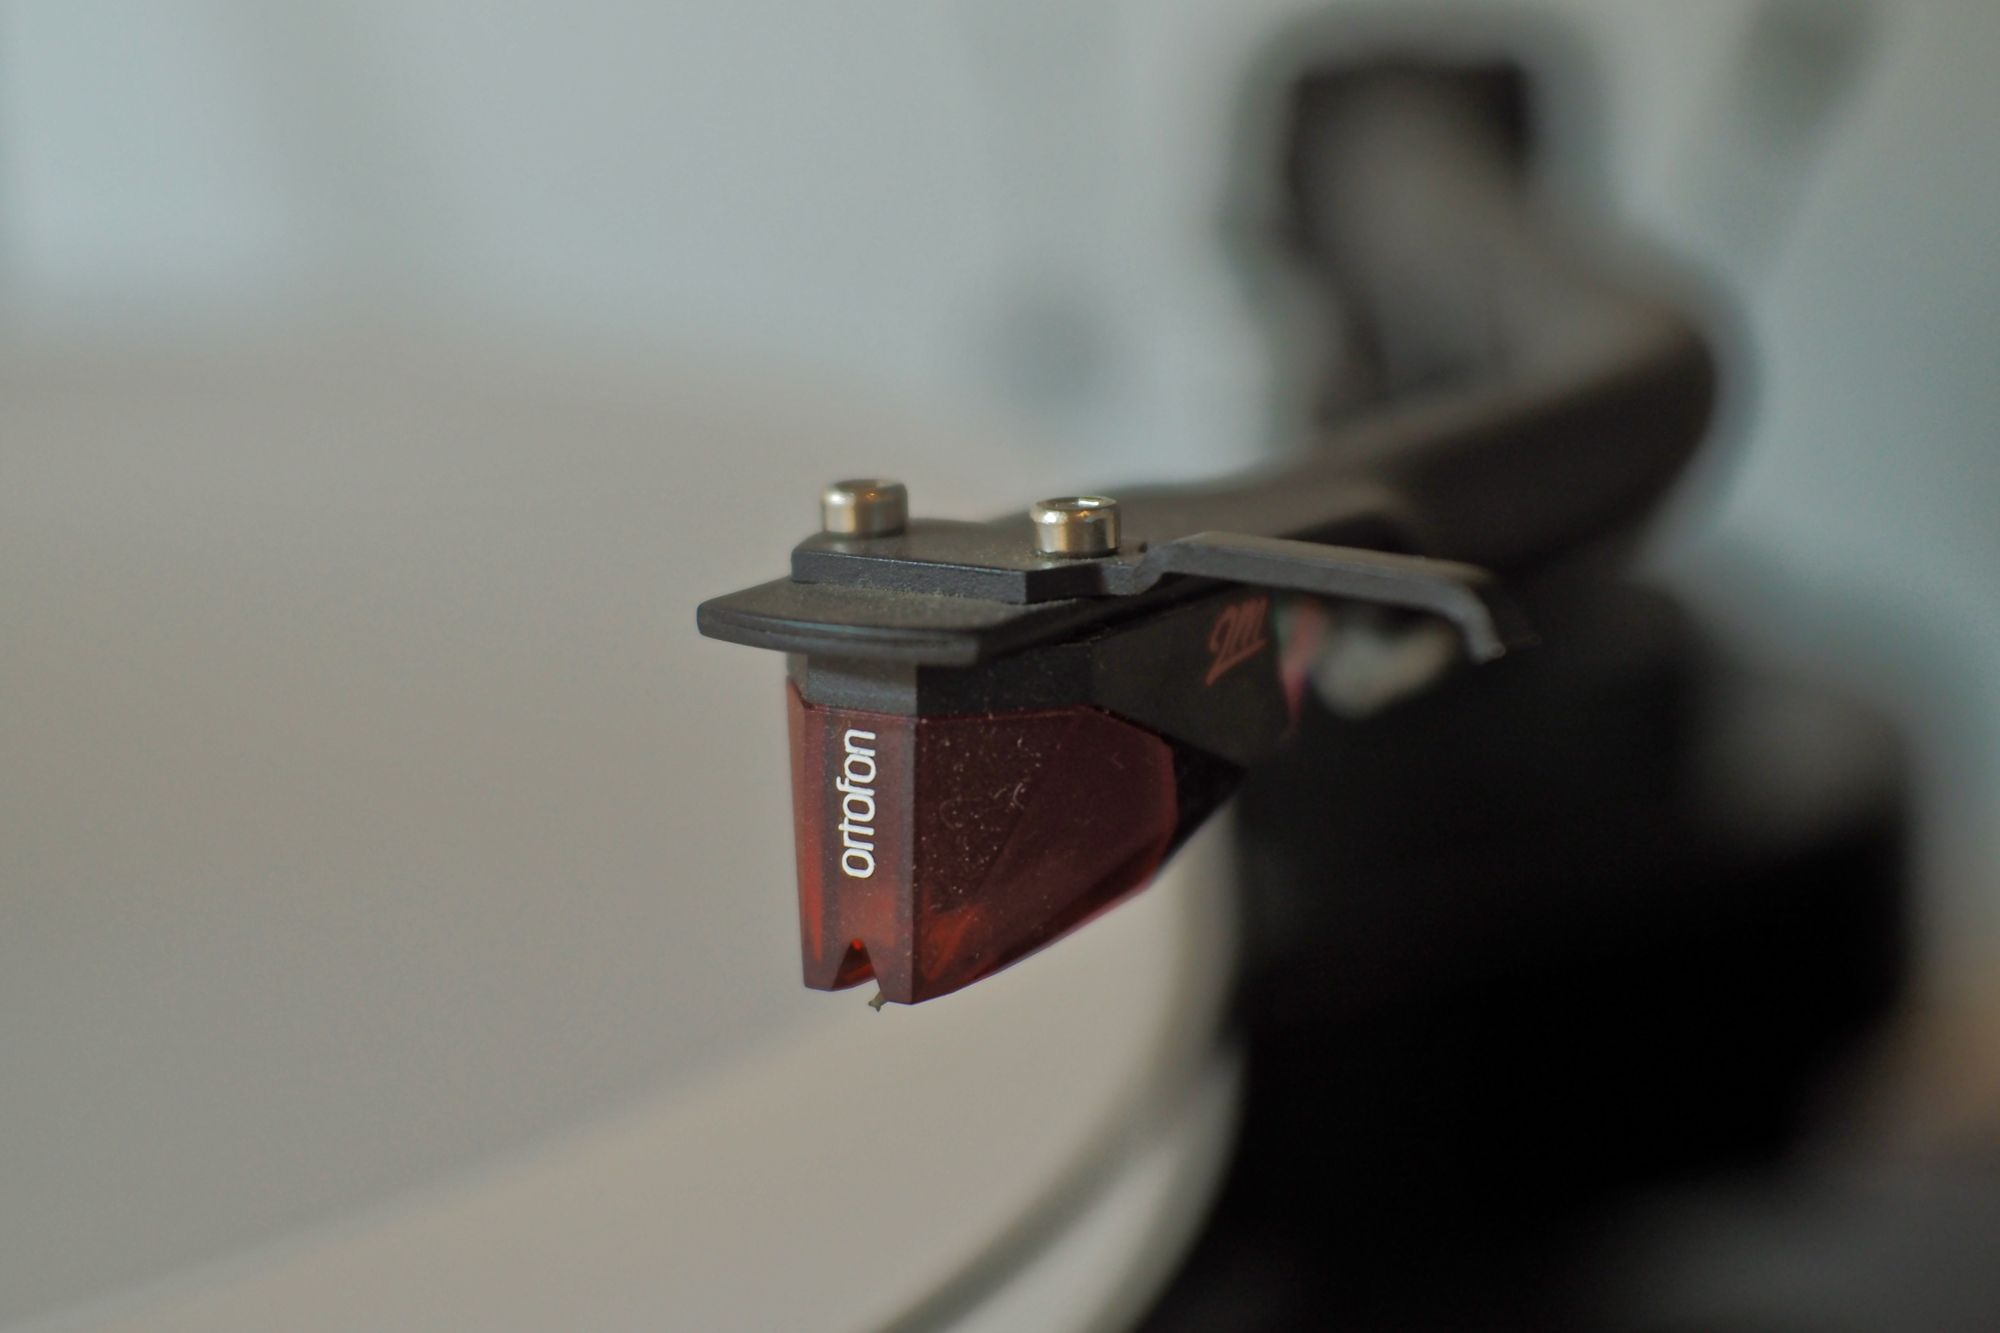 The Ortofon 2M Red as it was installed on my record player.